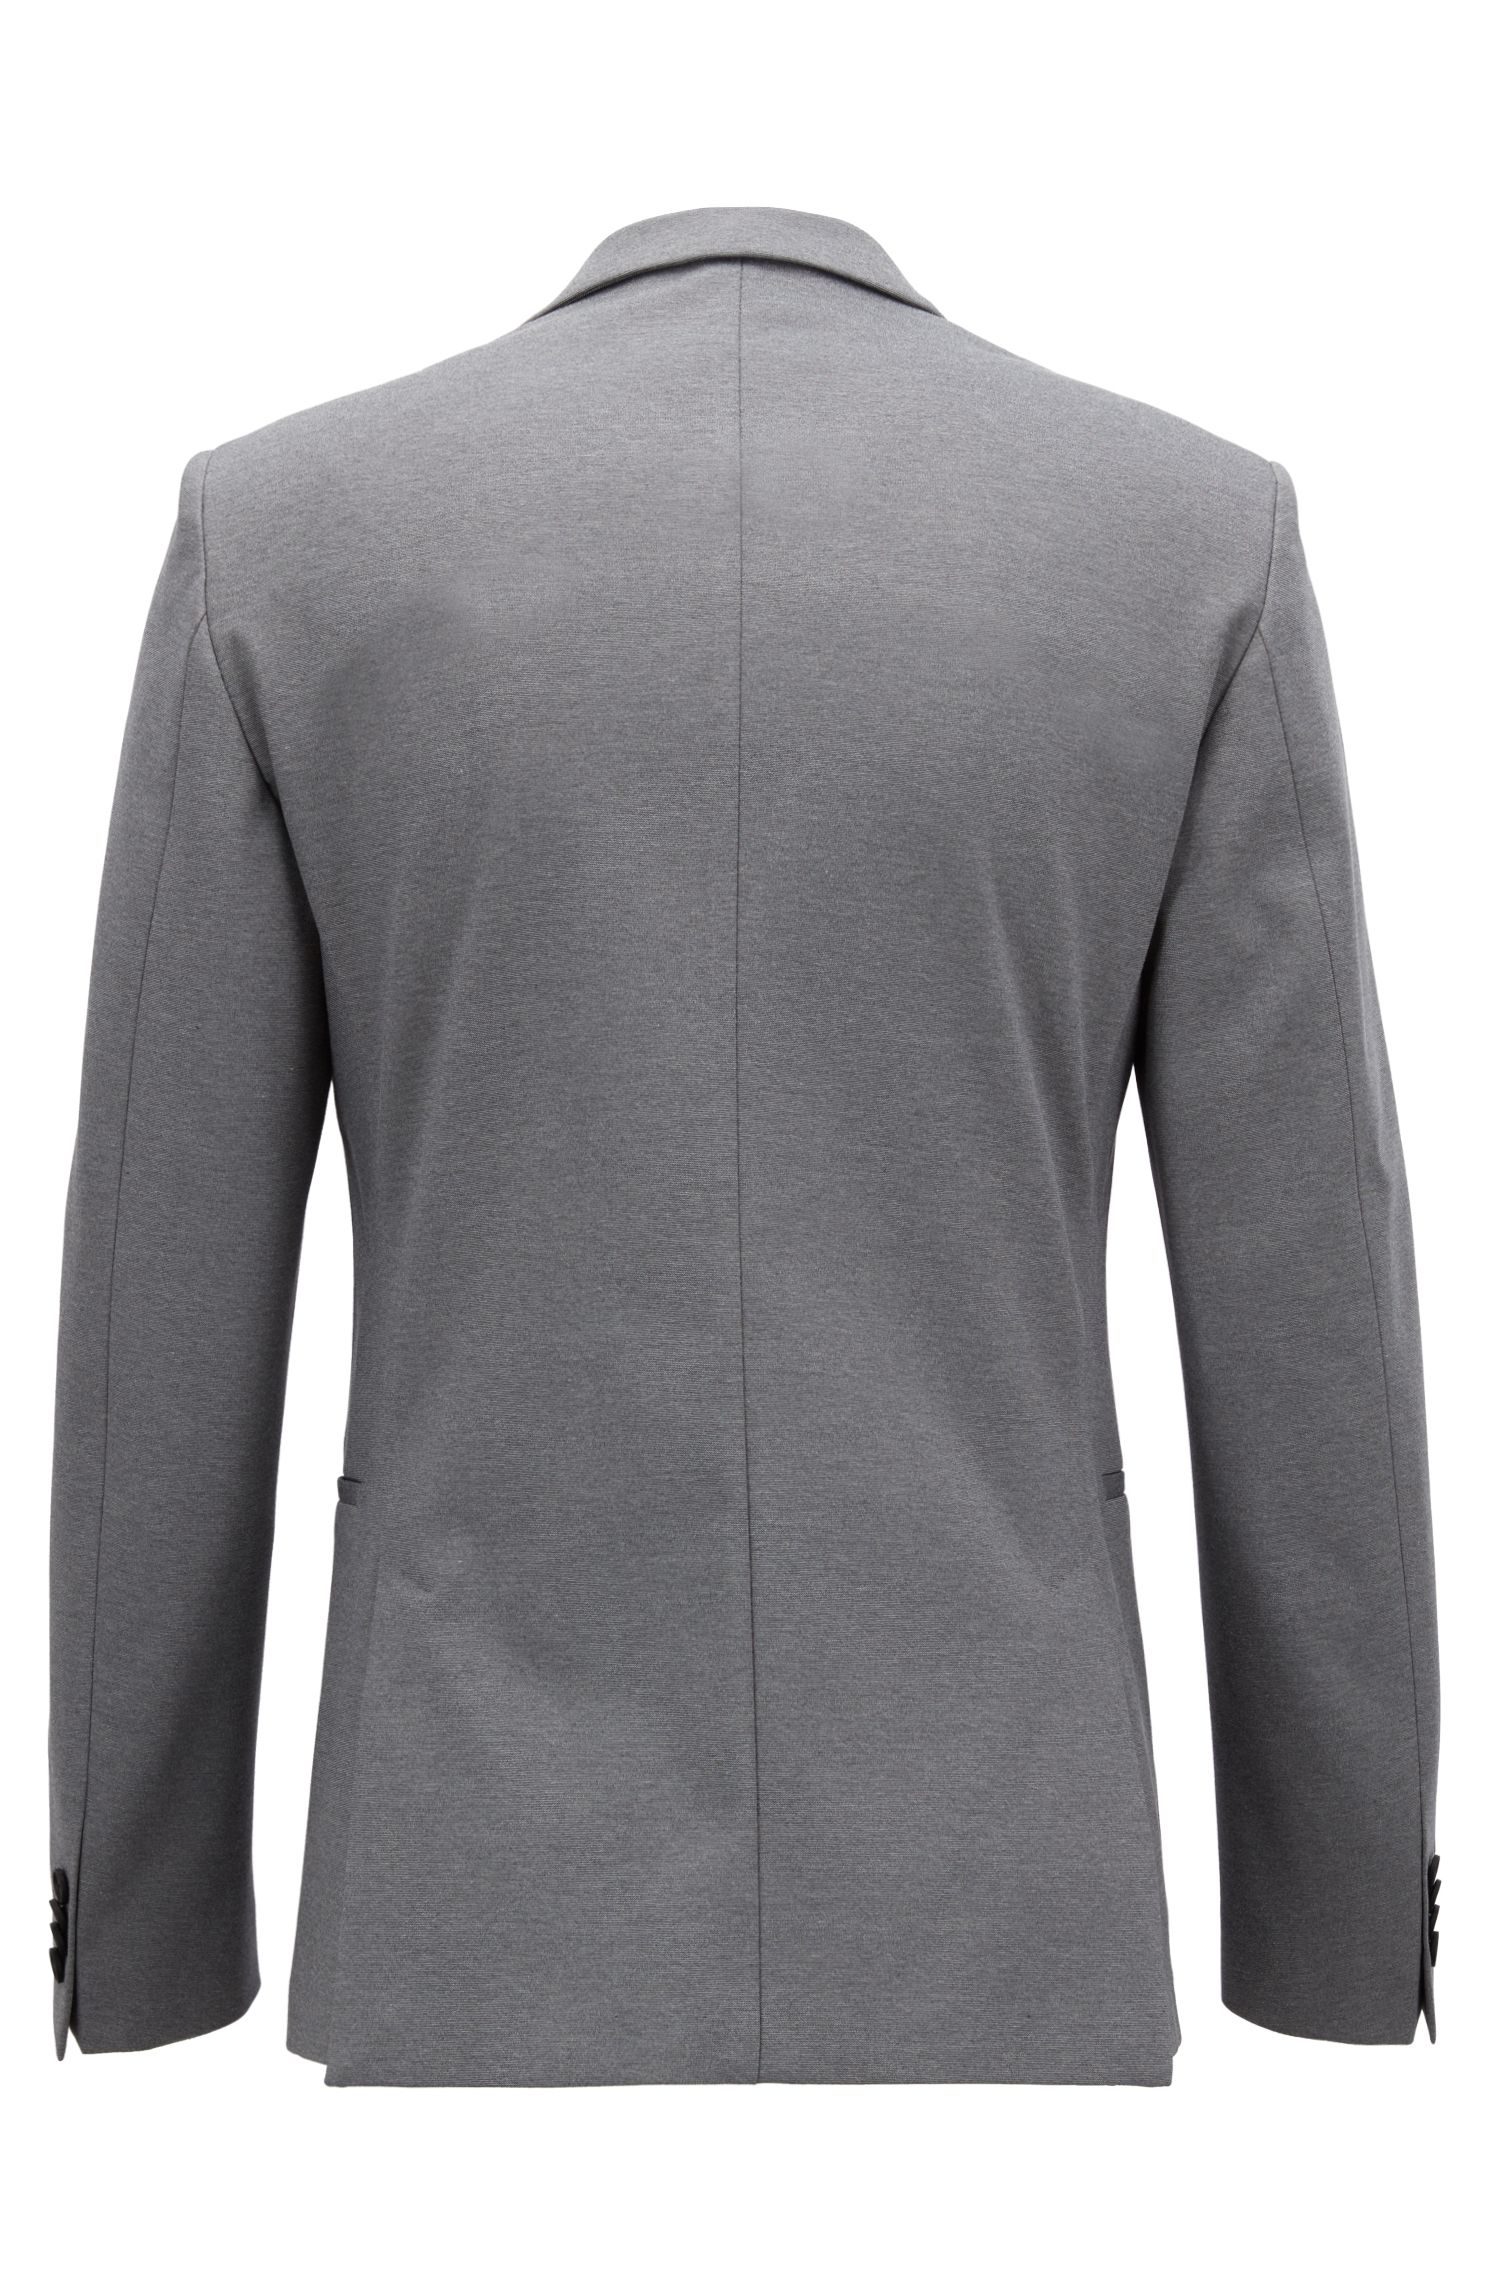 Blazer Slim Fit en coton stretch mélangé